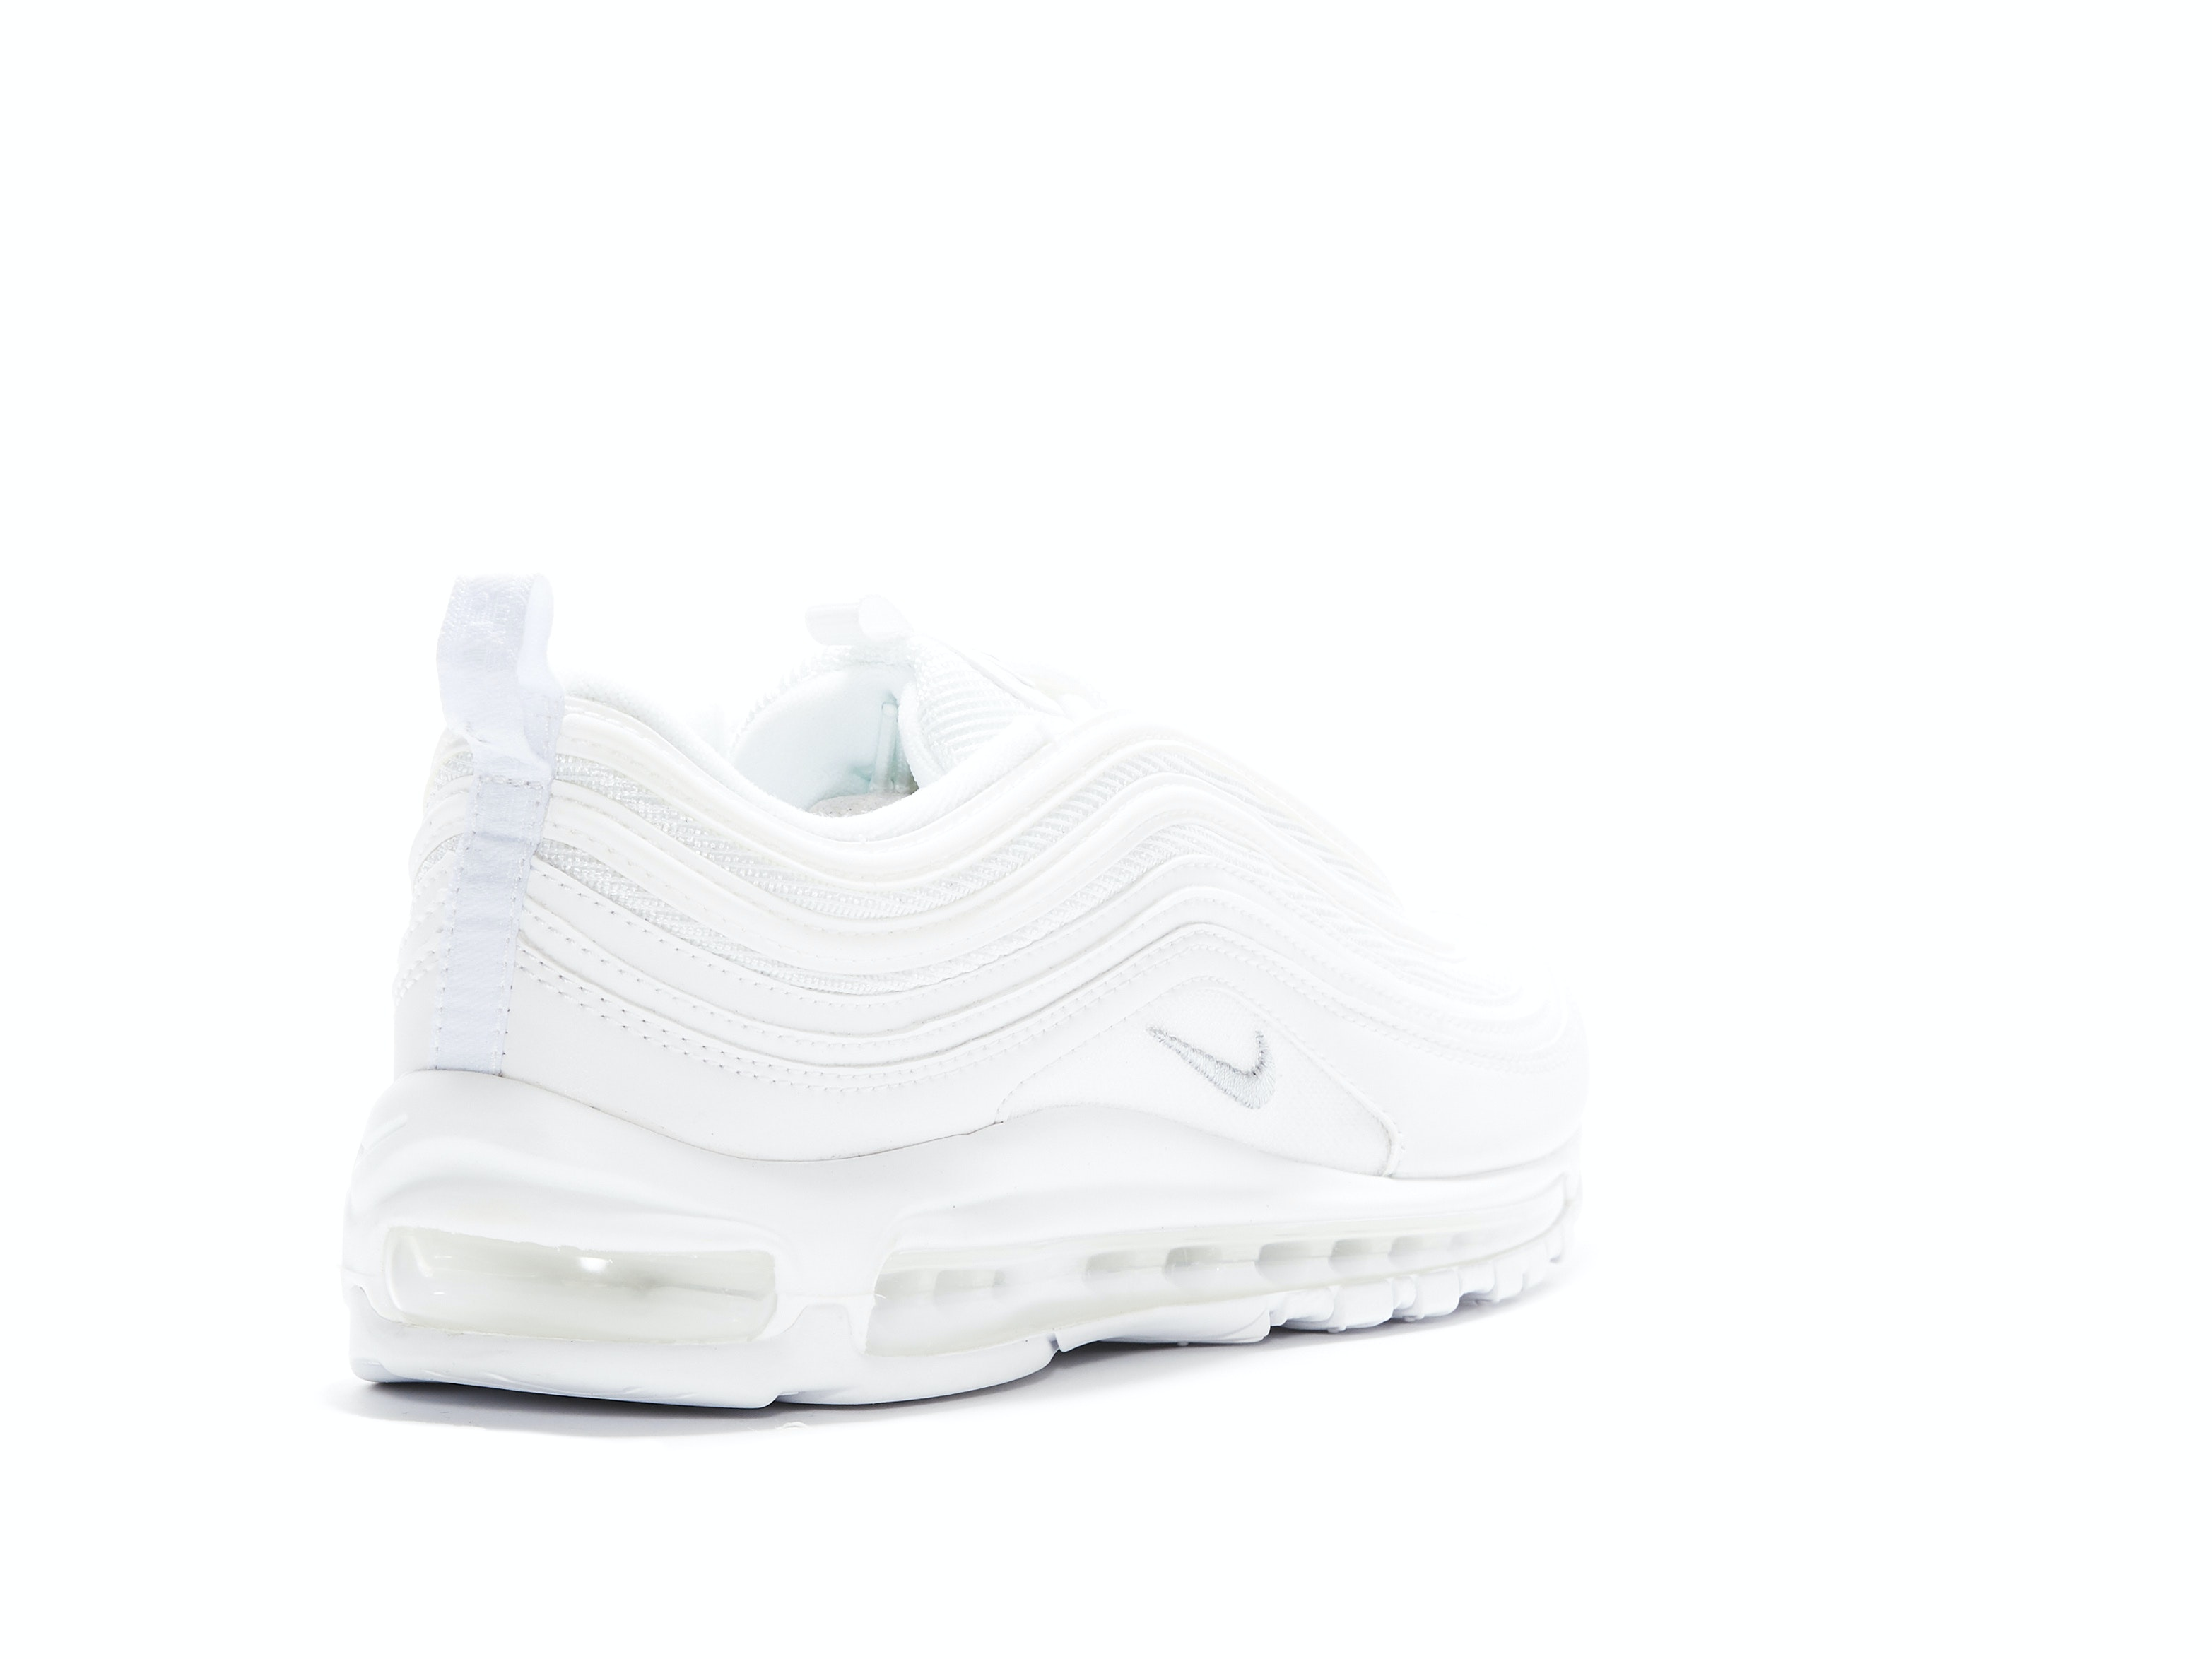 huge discount ffe60 0c792 Air Max 97 White Wolf Grey. 100% AuthenticSold out! Nike   921826-101